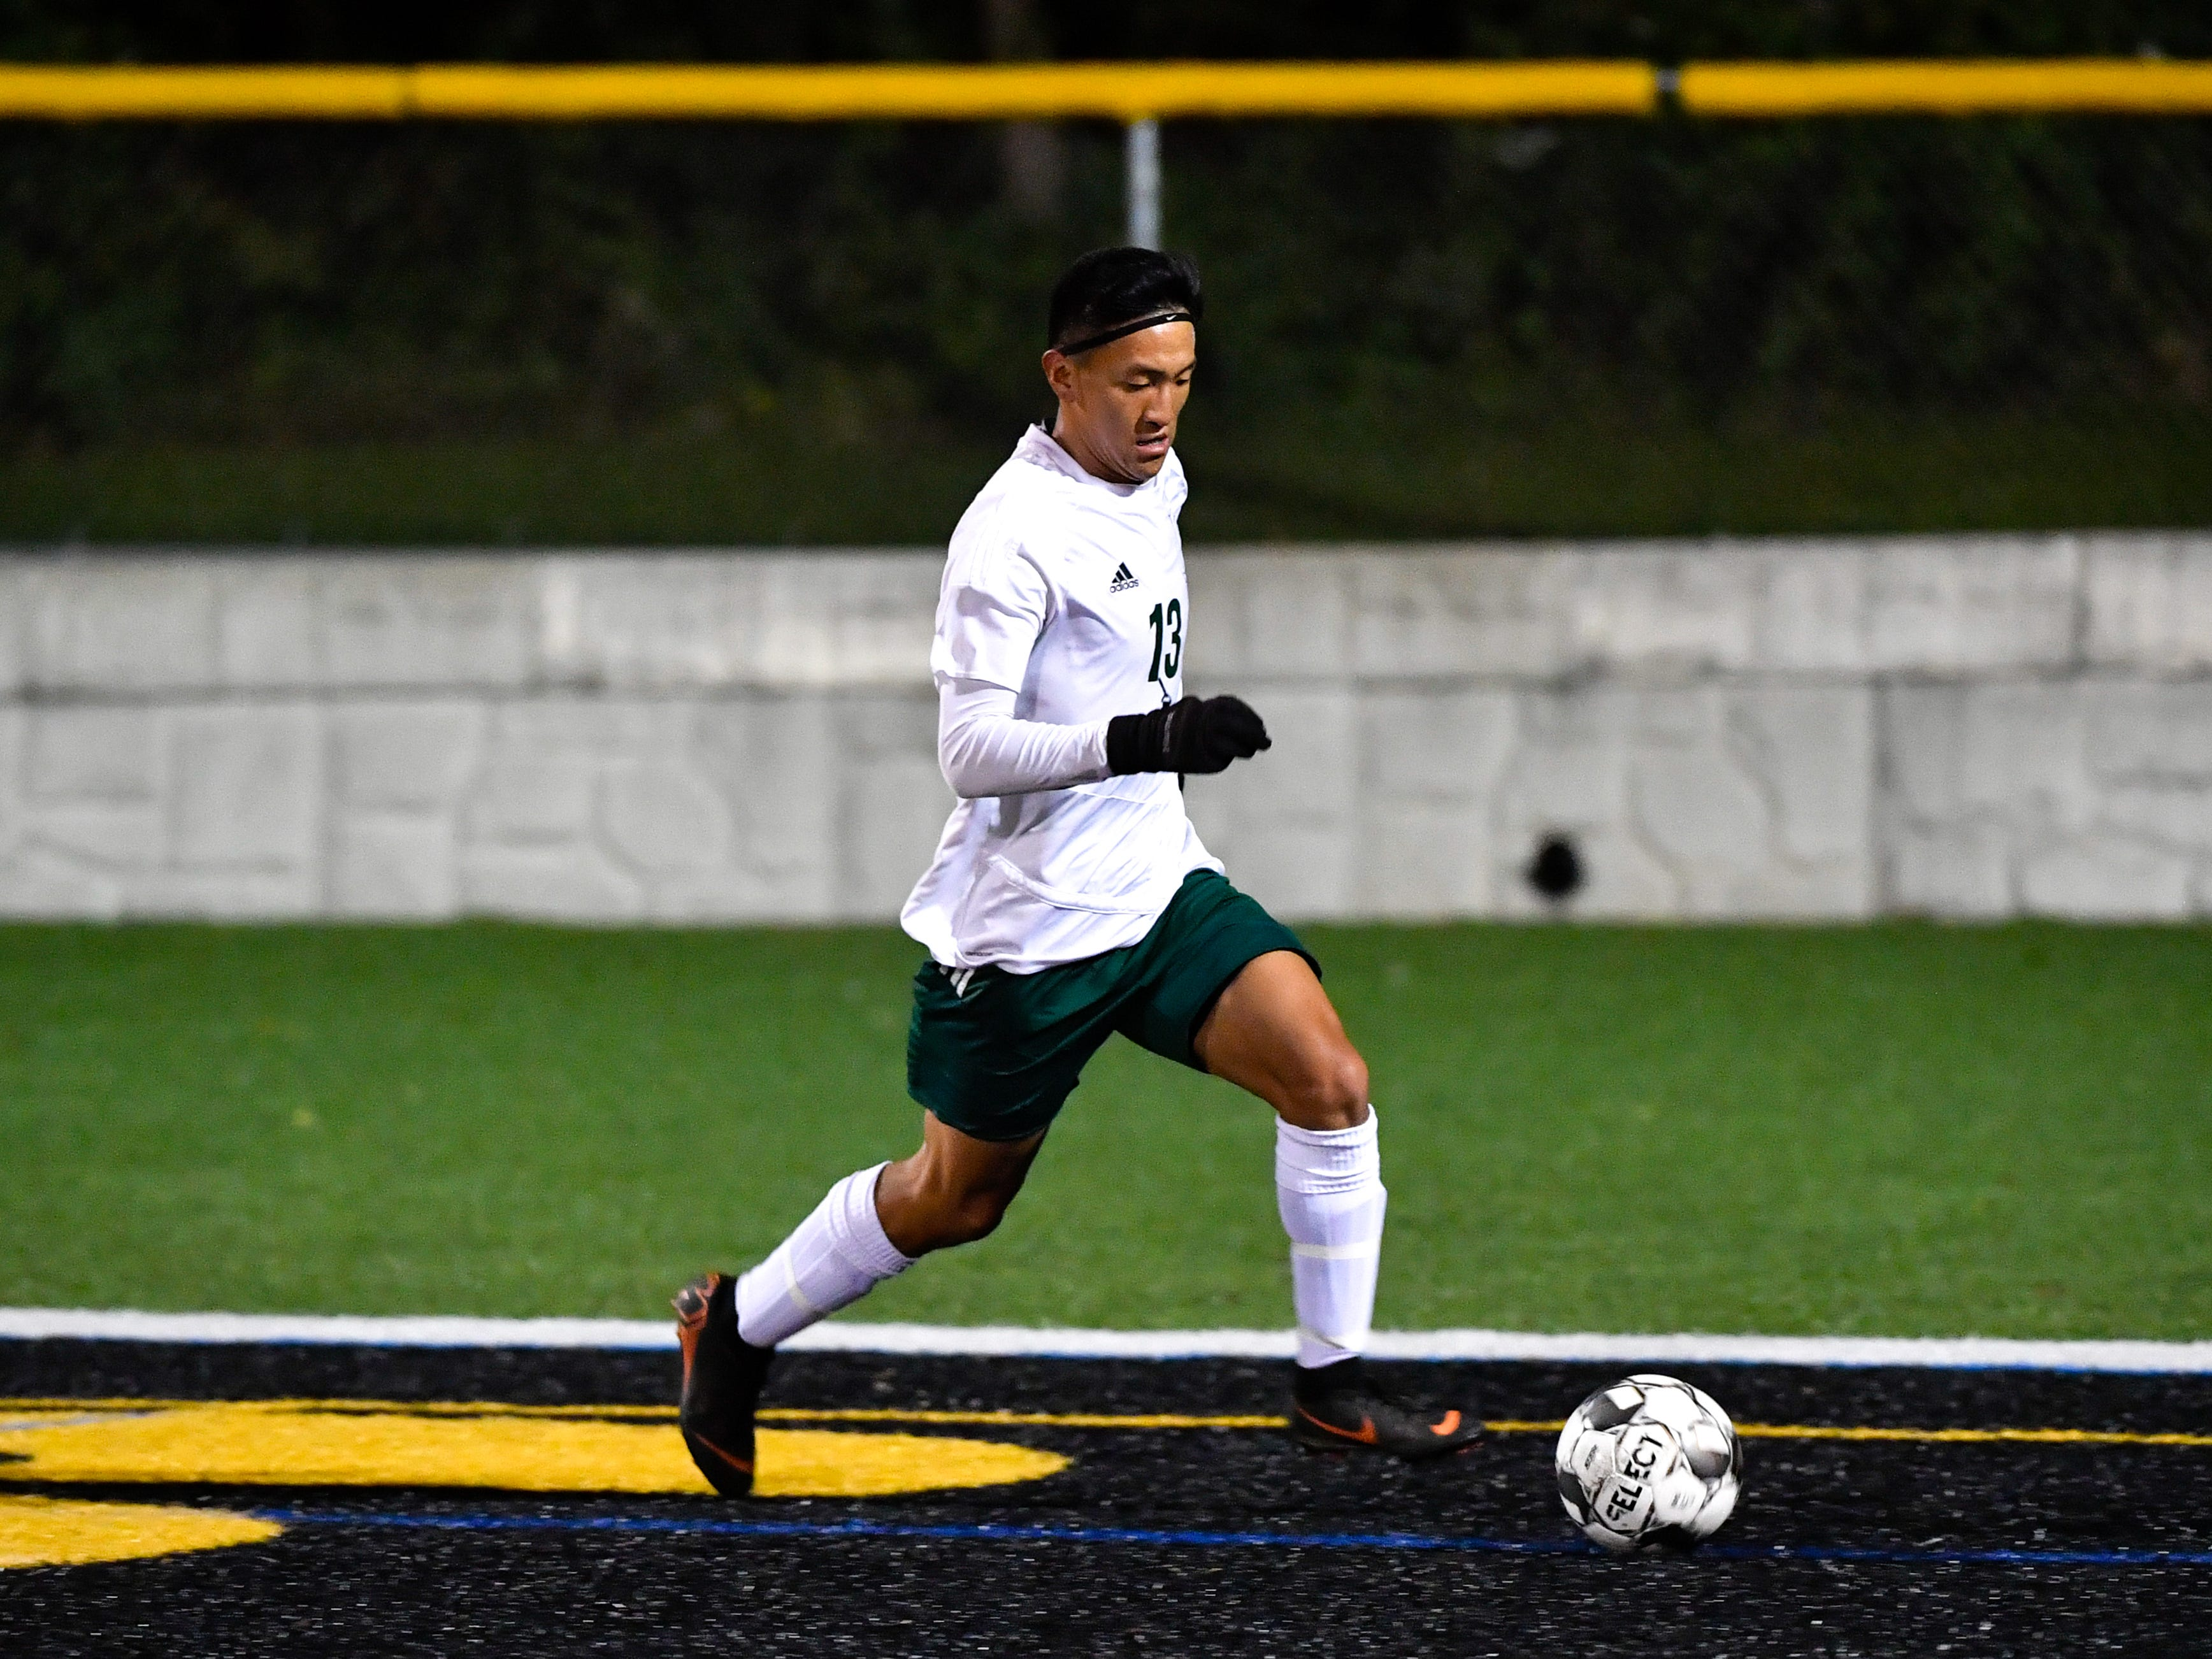 Sean Lavallee (13) of York Catholic takes the ball out of the box during the boys soccer game between South Western and York Catholic, October 16, 2018. The Mustangs beat the Irish 2-1.